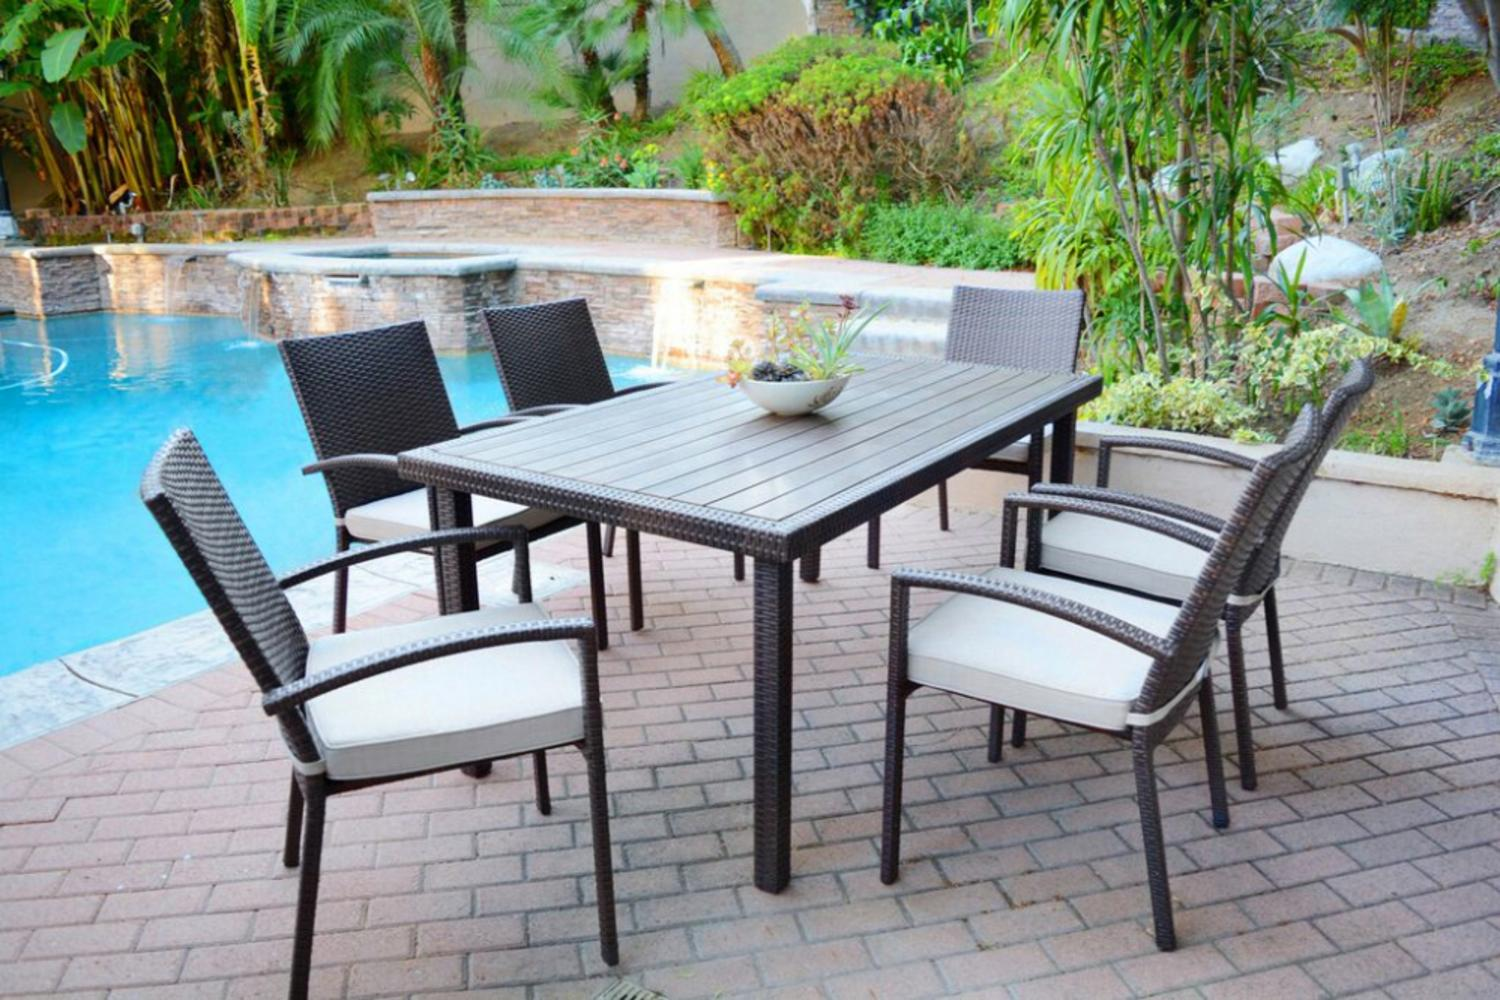 7 Piece Espresso Resin Wicker Outdoor Table And Chairs